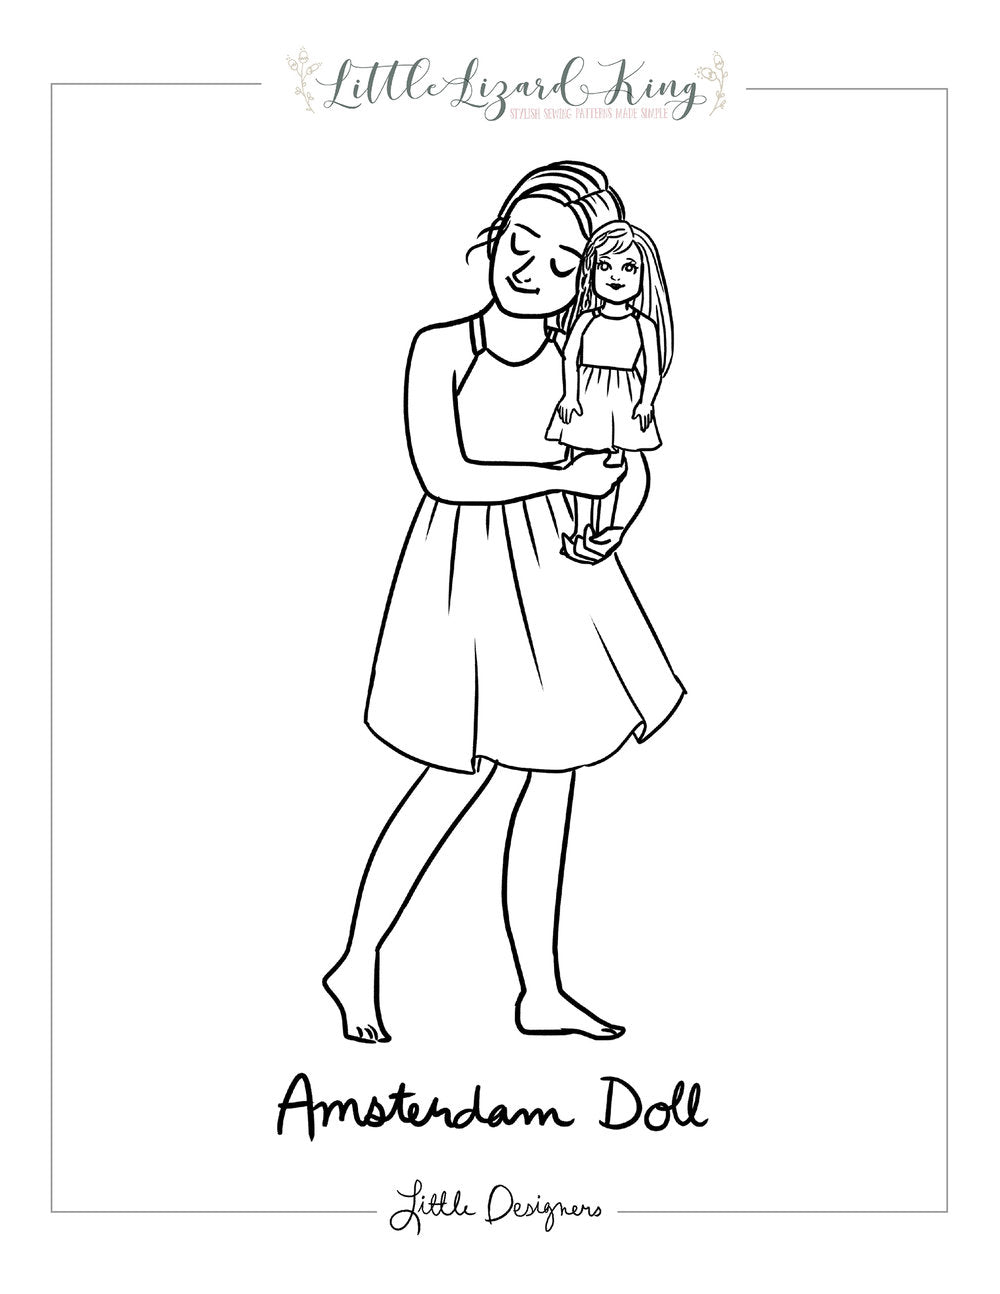 Amsterdam Doll Coloring Page